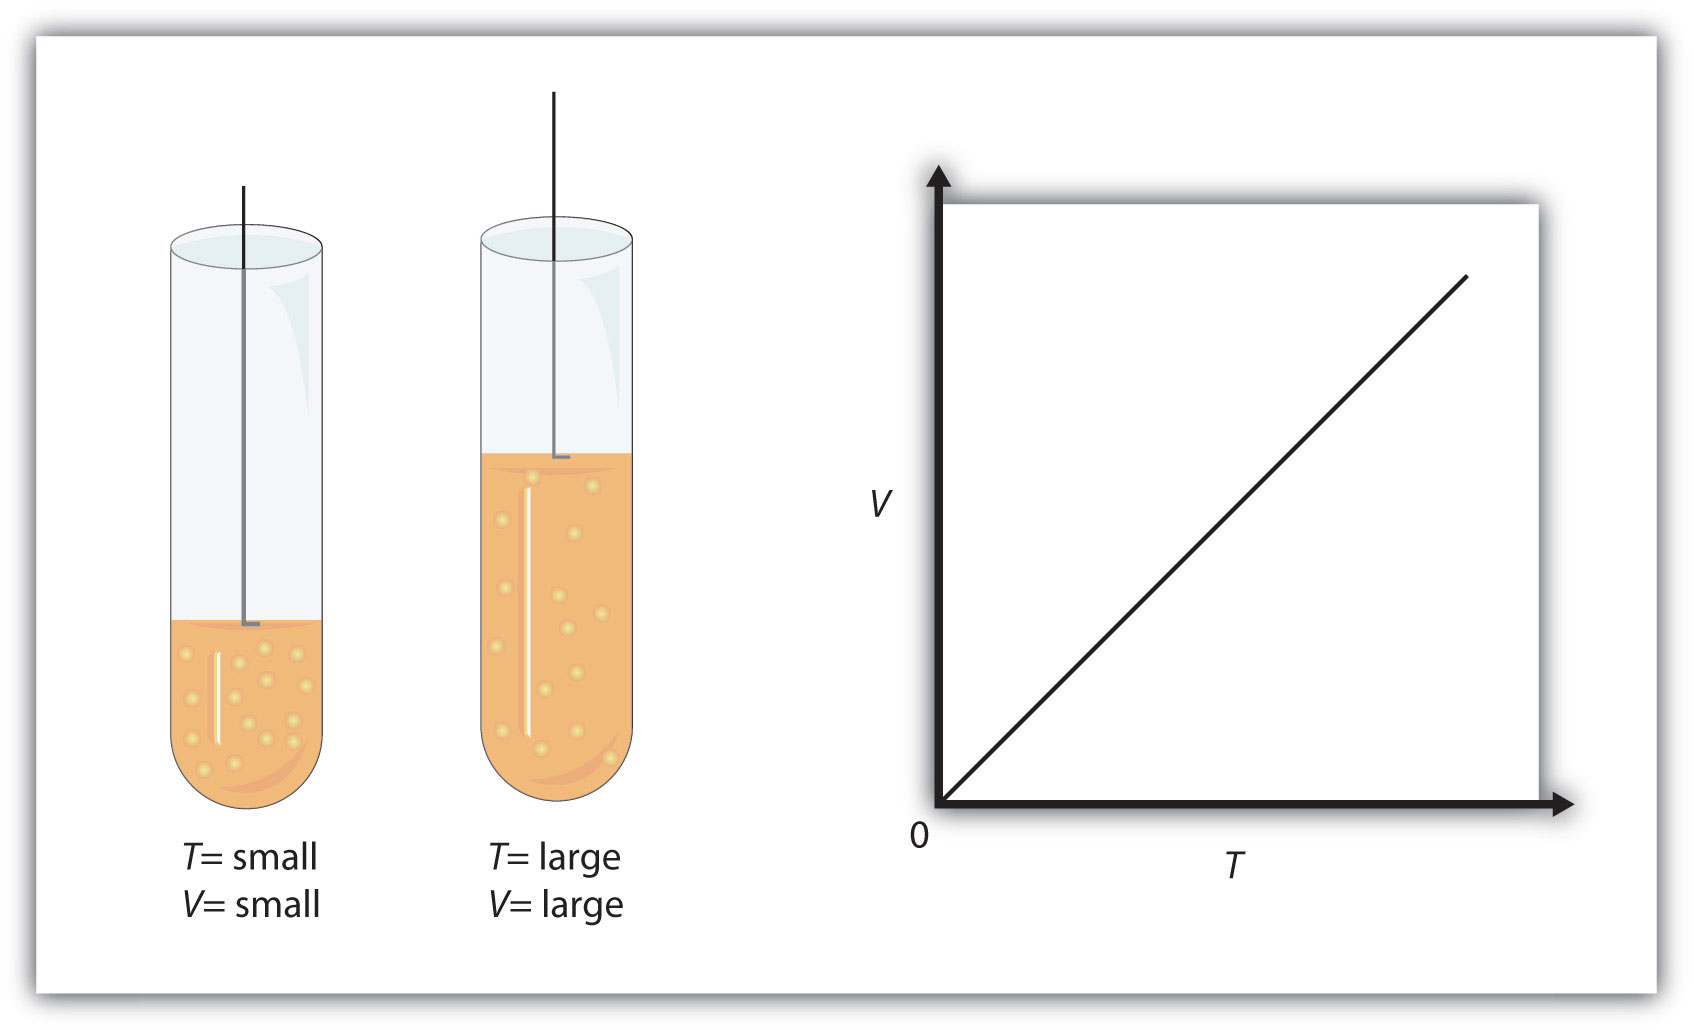 https://saylordotorg.github.io/text_introductory-chemistry/s10-03-gas-laws.html